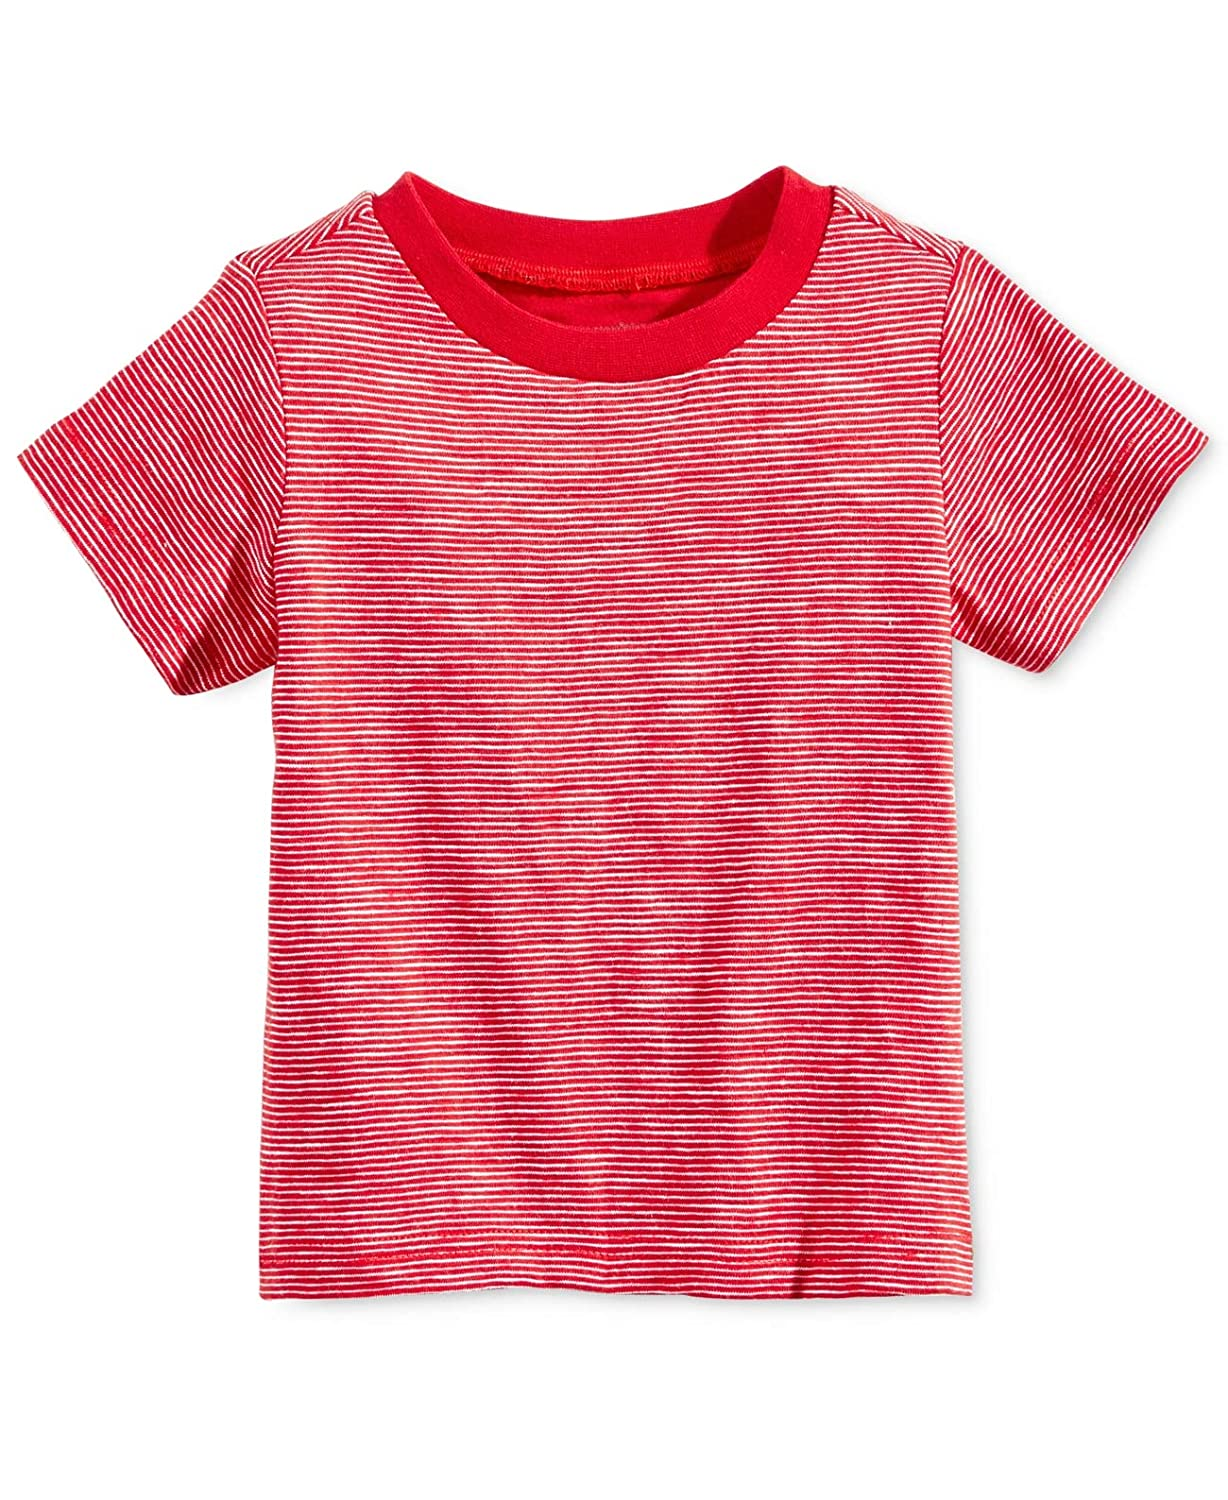 Baby Boys Red, 18 Months First Impressions Cotton Striped T-Shirt